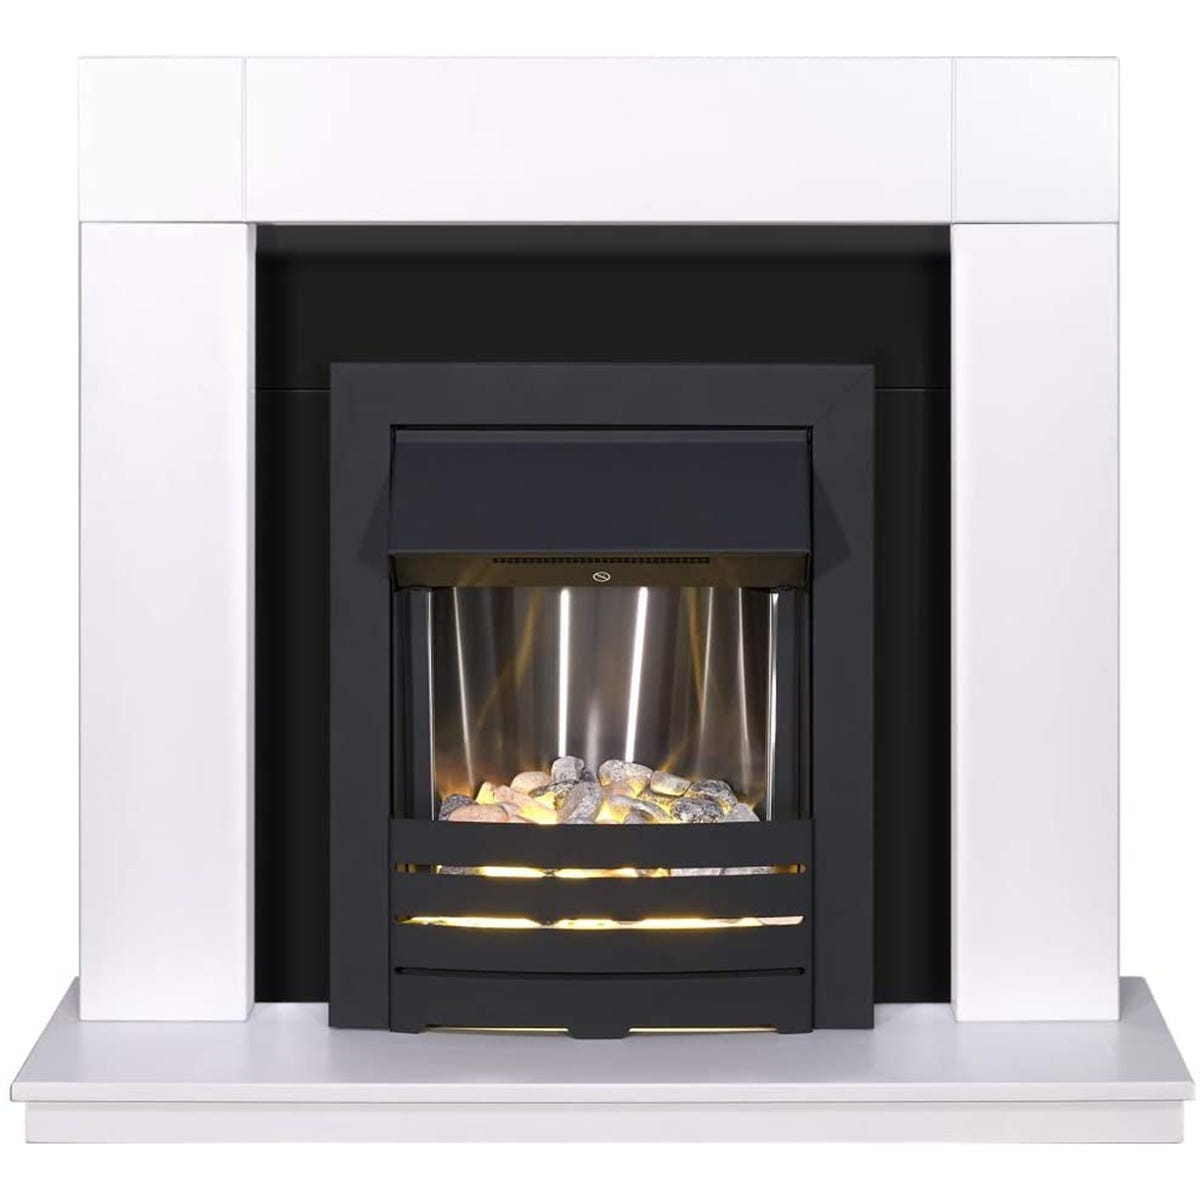 Adam Malmo Fireplace in Pure White & Black/White with Helios Electric Fire in Black 39 Inch